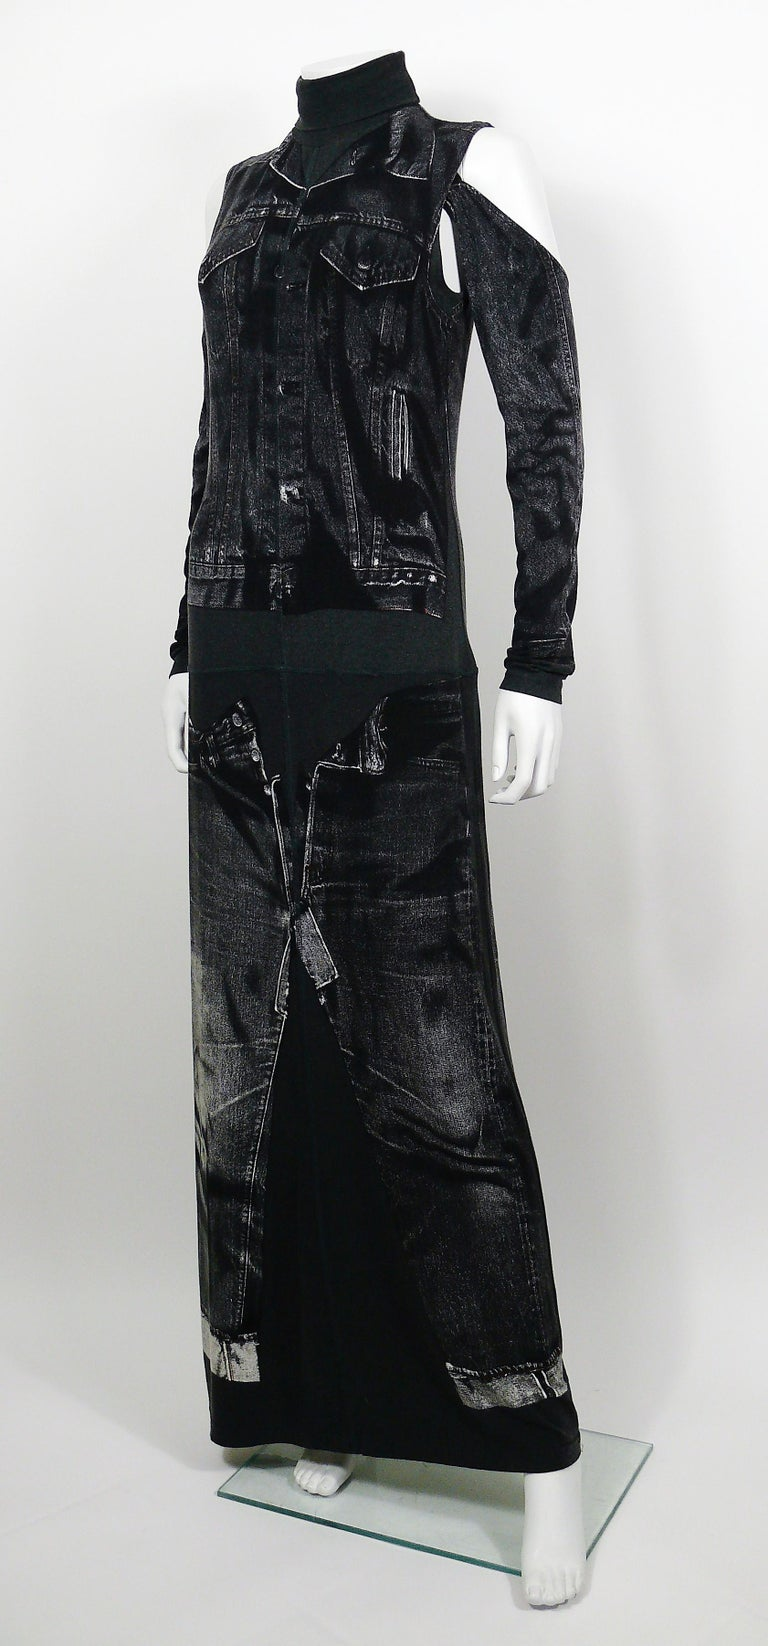 Jean Paul Gaultier Trompe L'oeil Maxi Dress with Detachable Sleeves In Good Condition For Sale In French Riviera, Nice